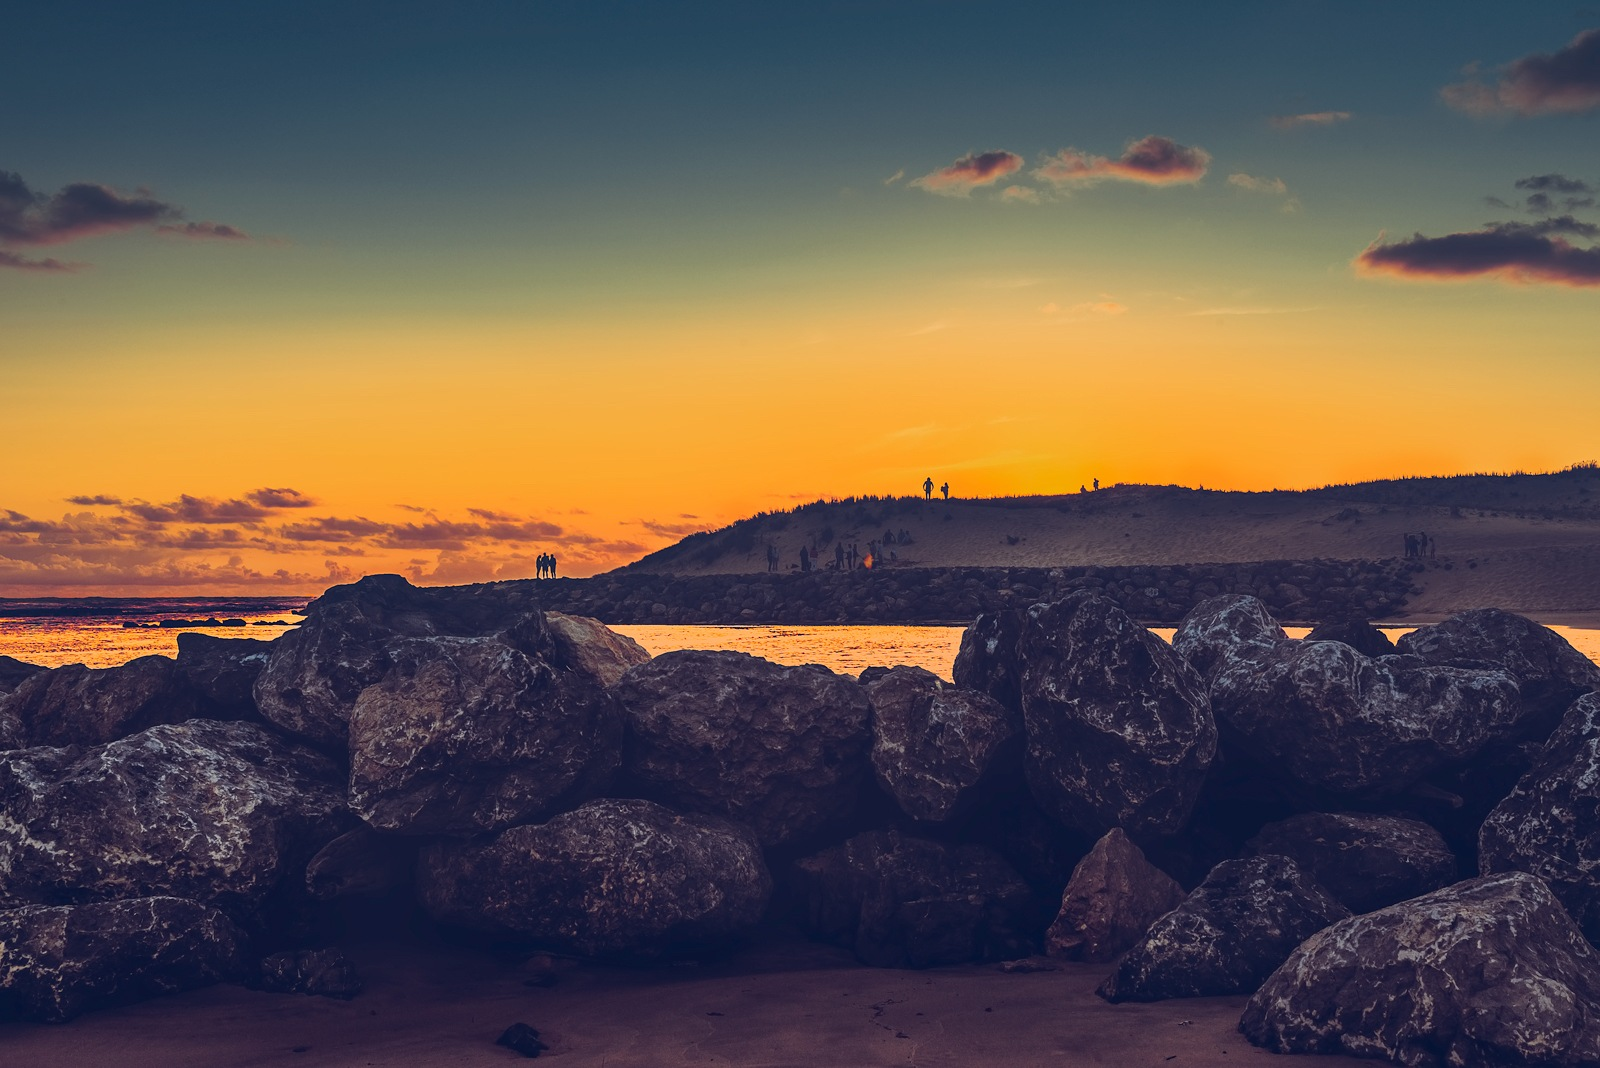 Sunset at the beach  by Rosana